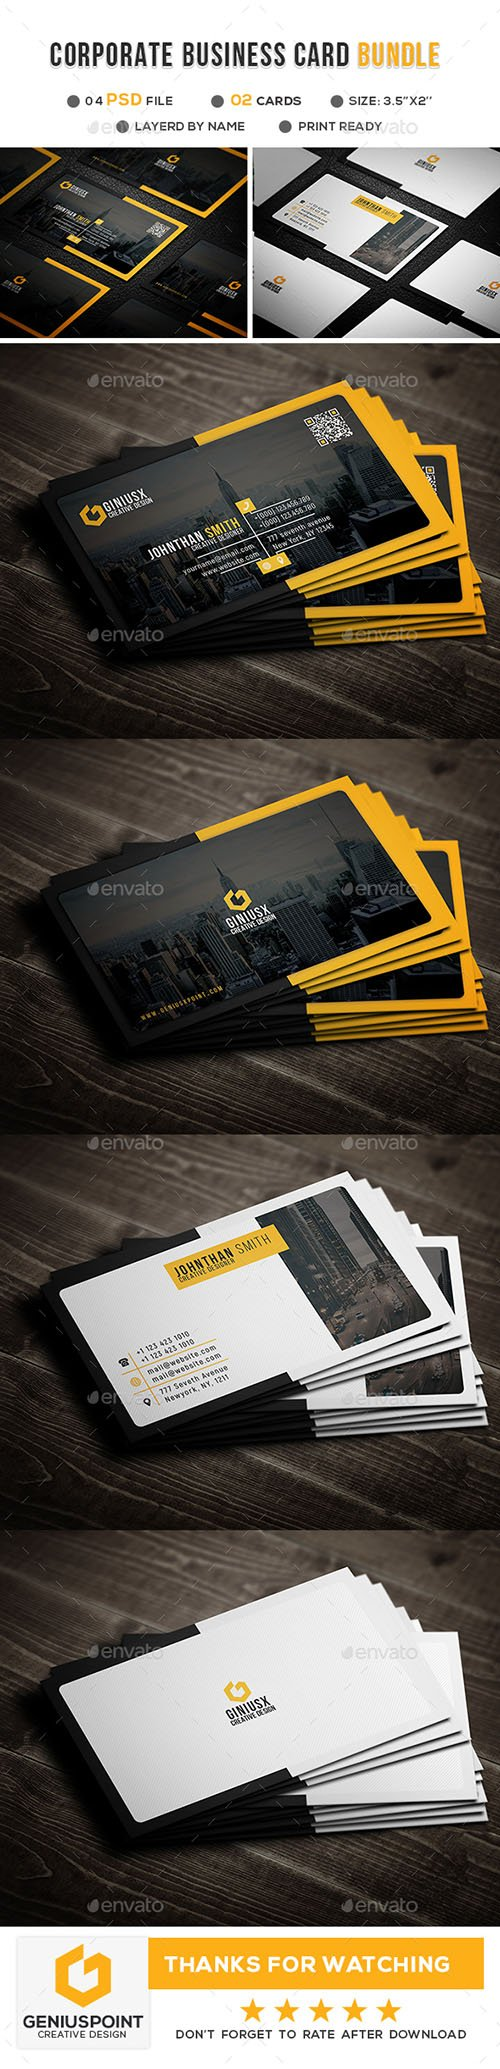 Corporate Business Card Bundle 21414588